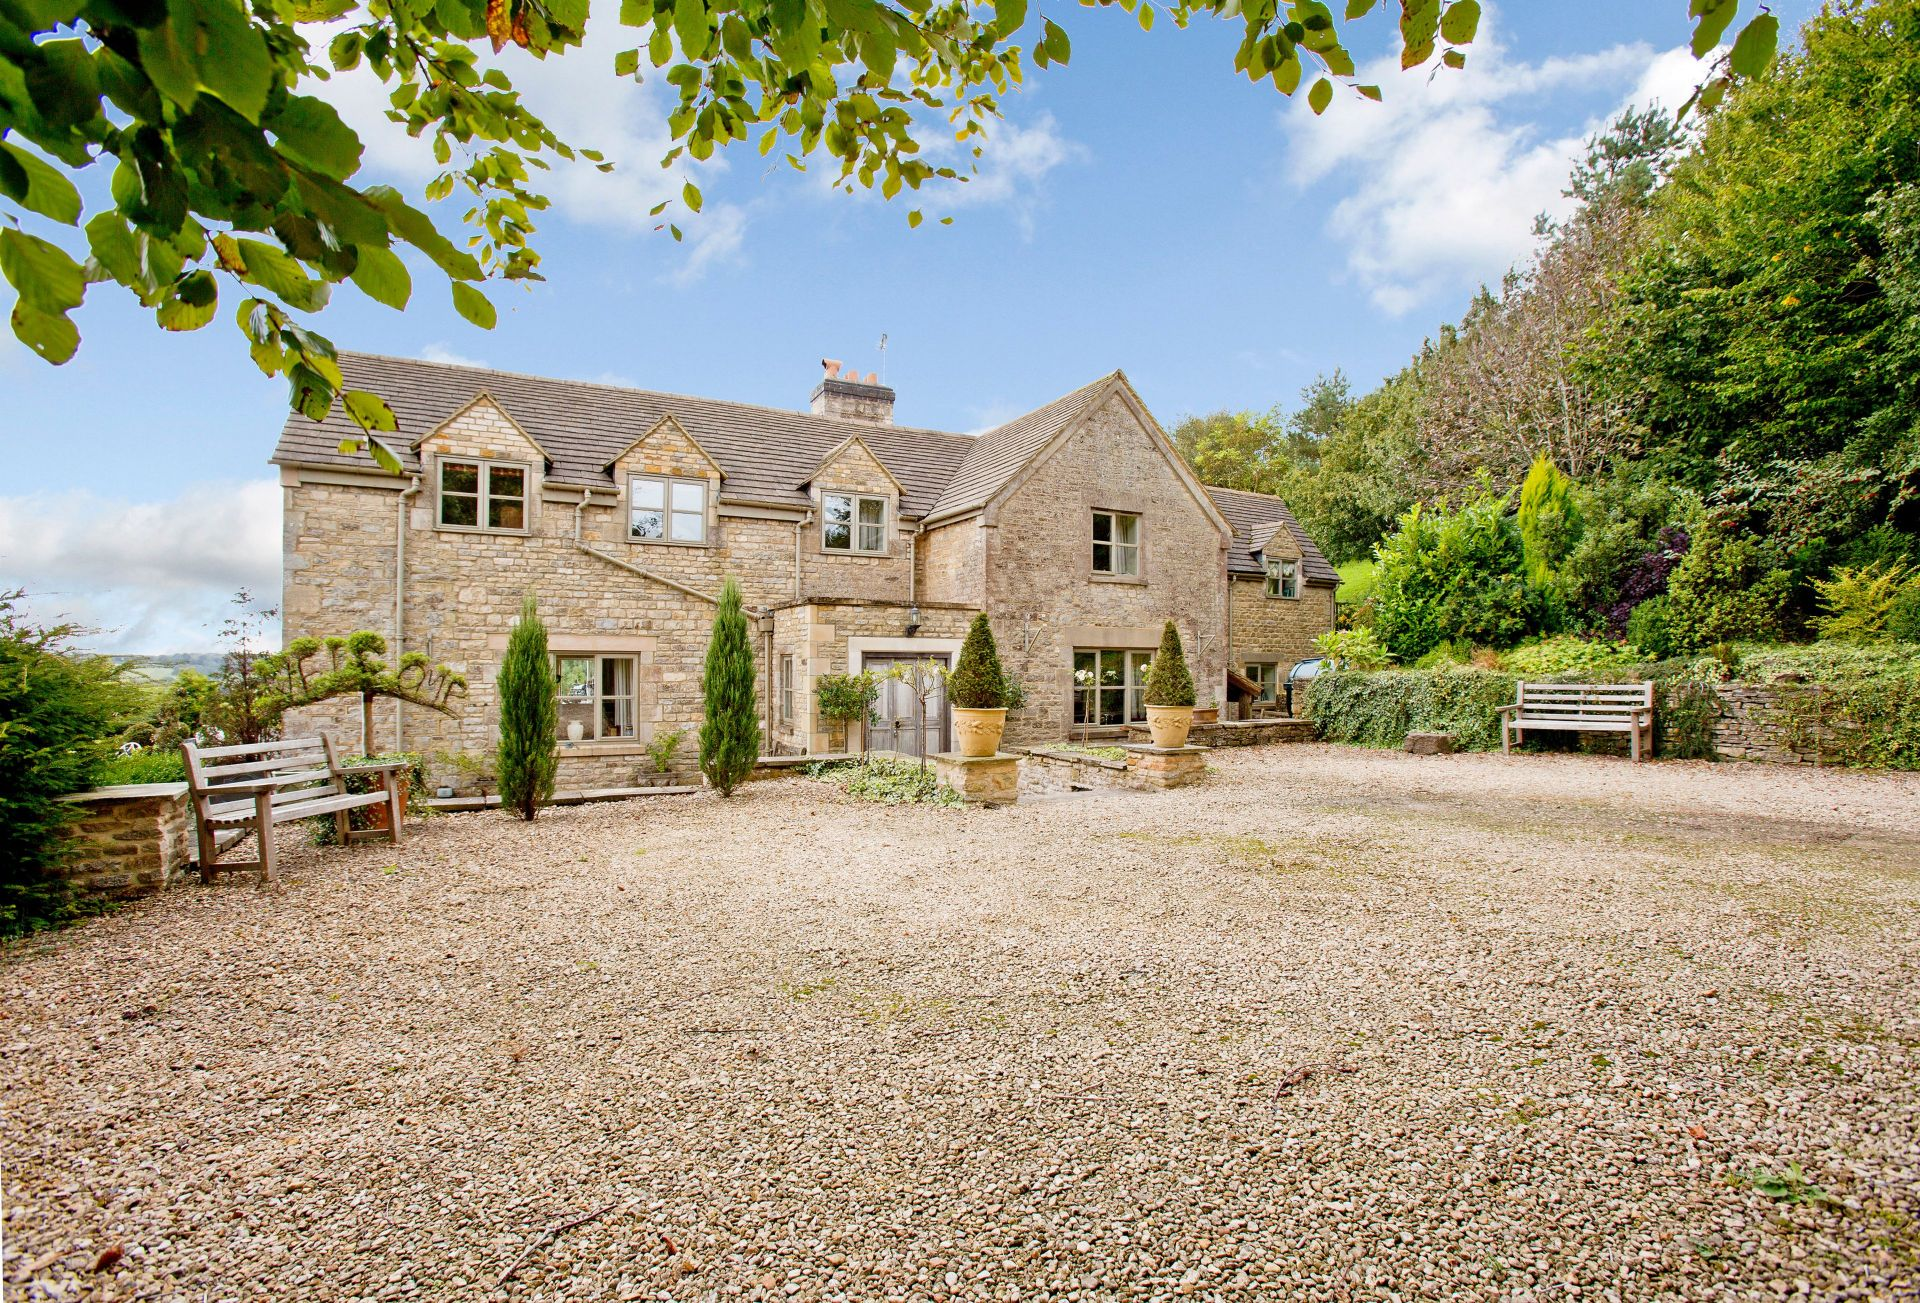 Springfield Country House is an undeniably stunning property with breath-taking views of the stunning rural Cotswolds